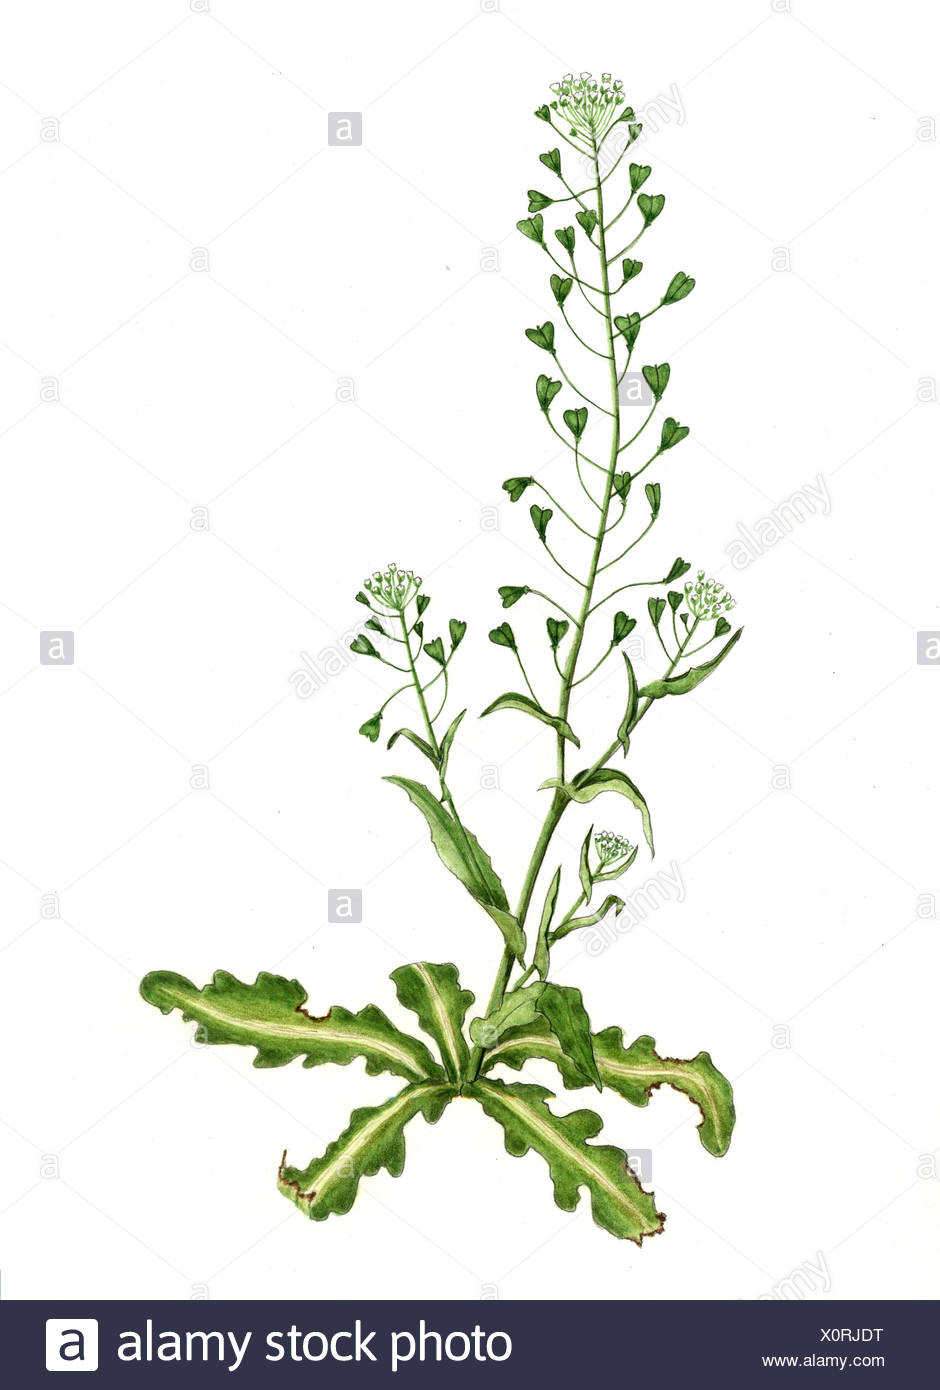 Bursae Pastoris Herba With Four Blossoms Stock Photo 275885284 Alamy